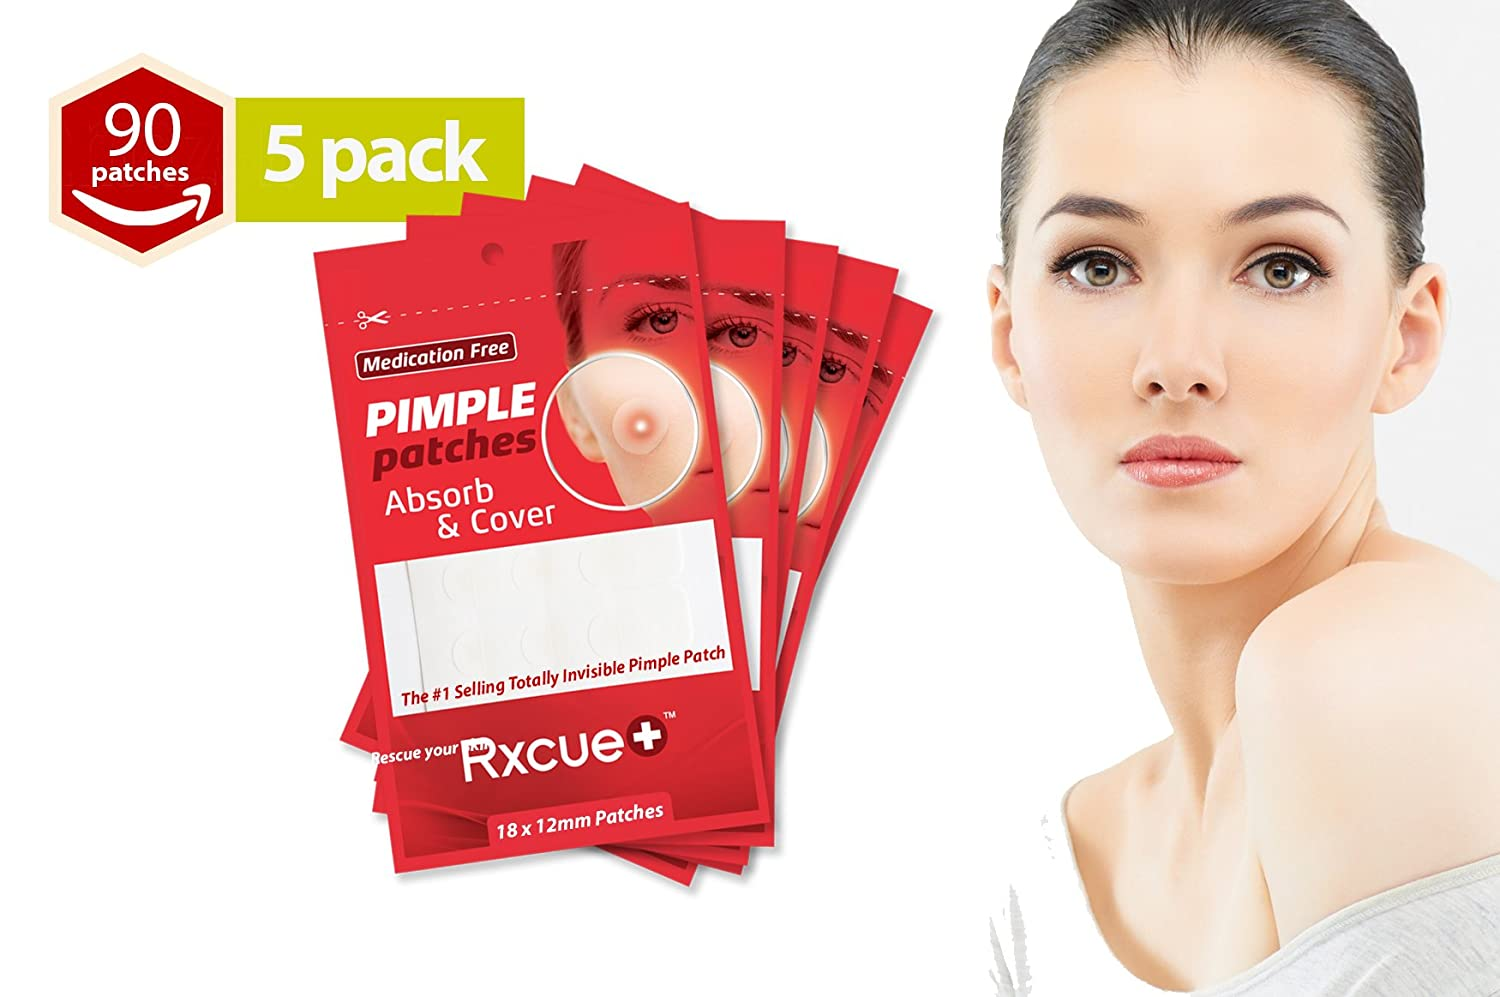 Rxcue Korean INVISIBLE Acne Blackhead Pimple Master Patches | 2, 5 AND 10 Pack | Super Thin and Medication Free | 12 mm size (5 Pack - 90 Pieces) Rxcue Korean Skin Care